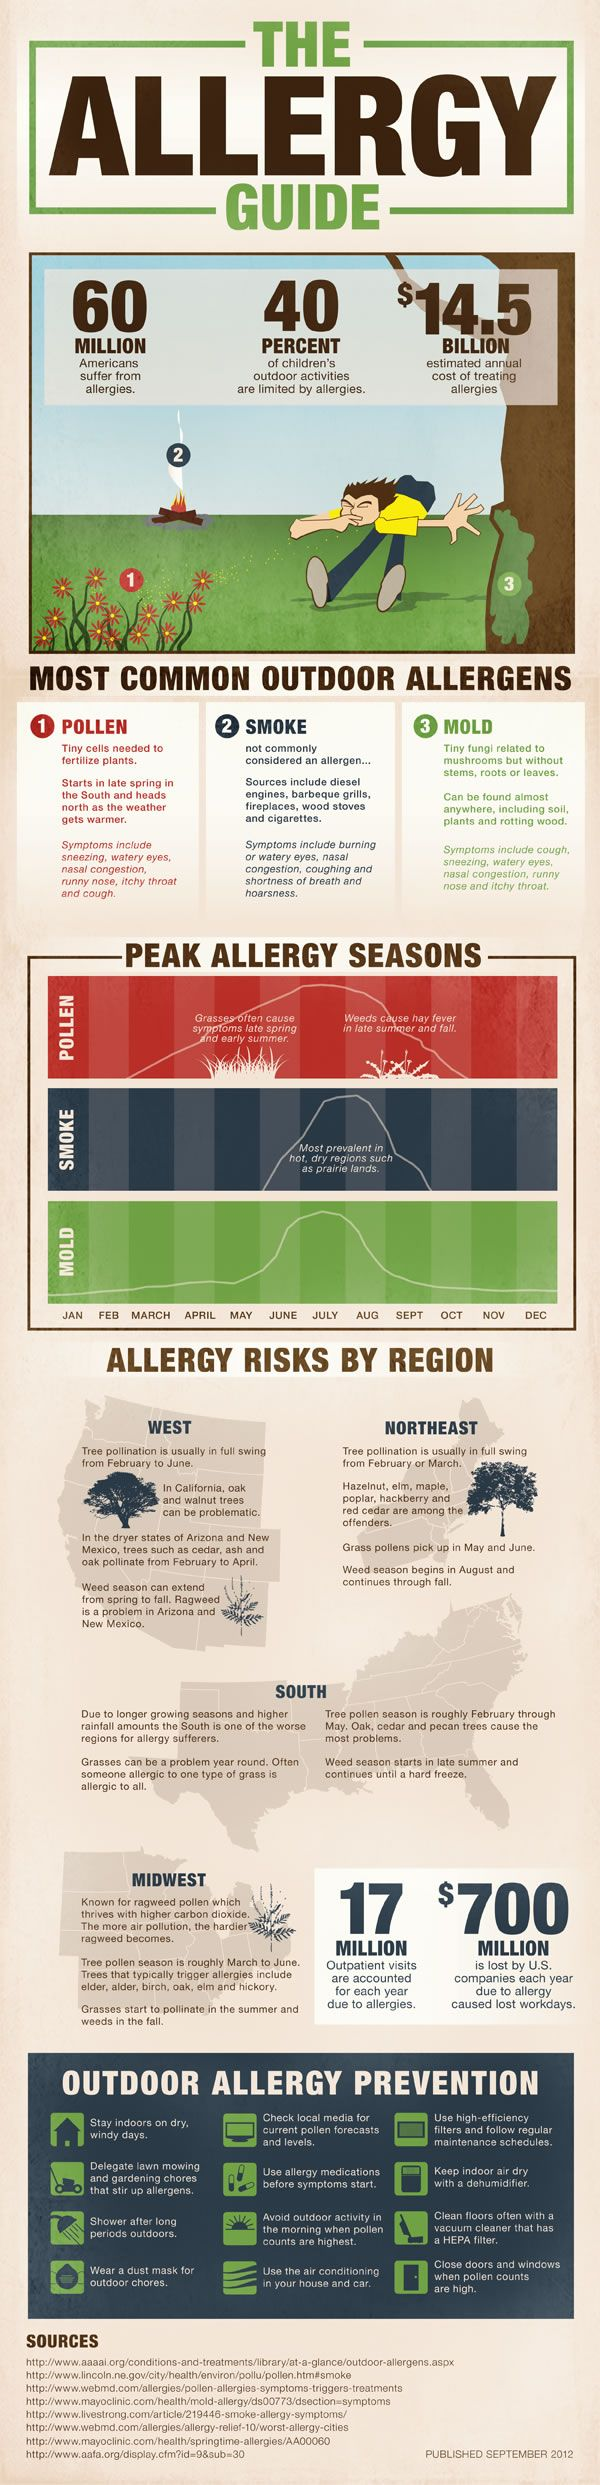 Air Pollution and Allergies in the USA [Infographic] via @cleanaircouncil | Eco Green Love